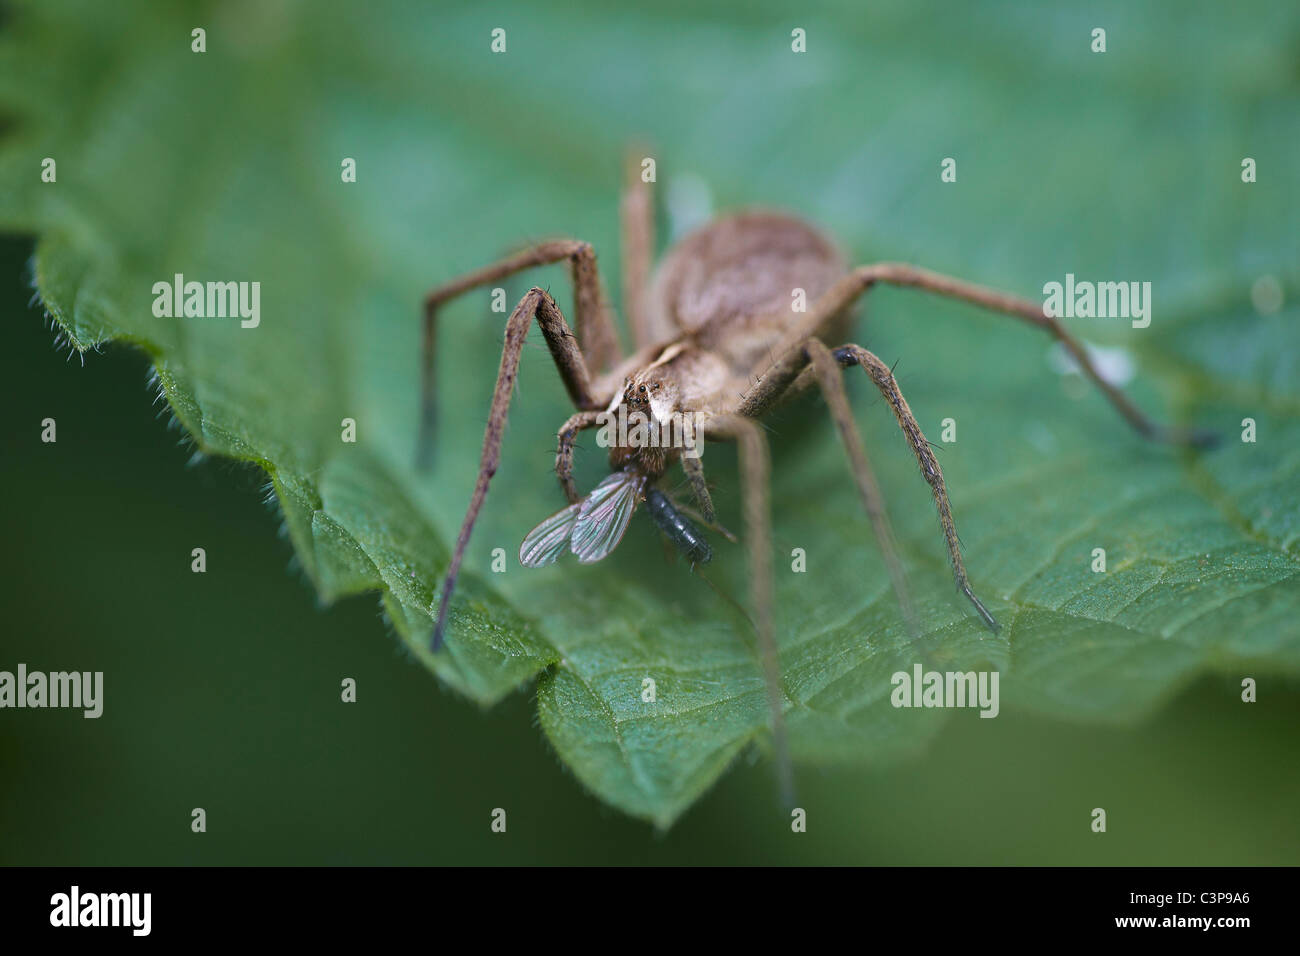 Nursery web spider, Pisaura mirabilis with prey, Askham bog nature reserve, York, UK - Stock Image